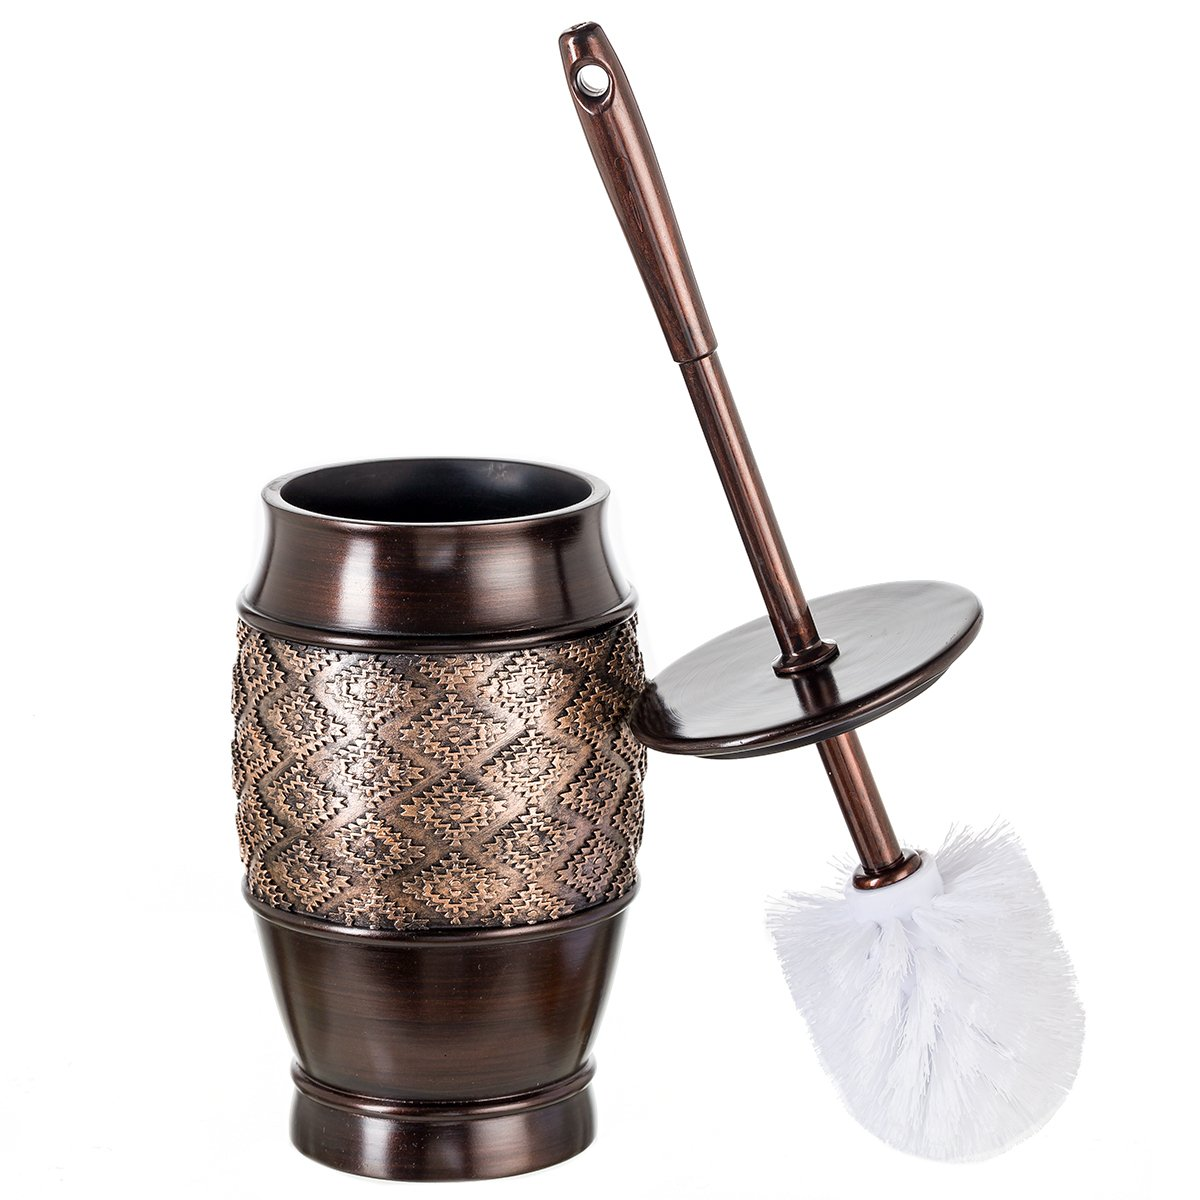 """Creative Scents Dublin Toilet Brush - Toilet Bowl Cleaner Brush and Holder - Decorative Toilet Bowl Scrubber - Space Saving Design 5"""" x 5"""" x 15""""H, Contemporary Toilet Bowl Cleaner (Brown)"""